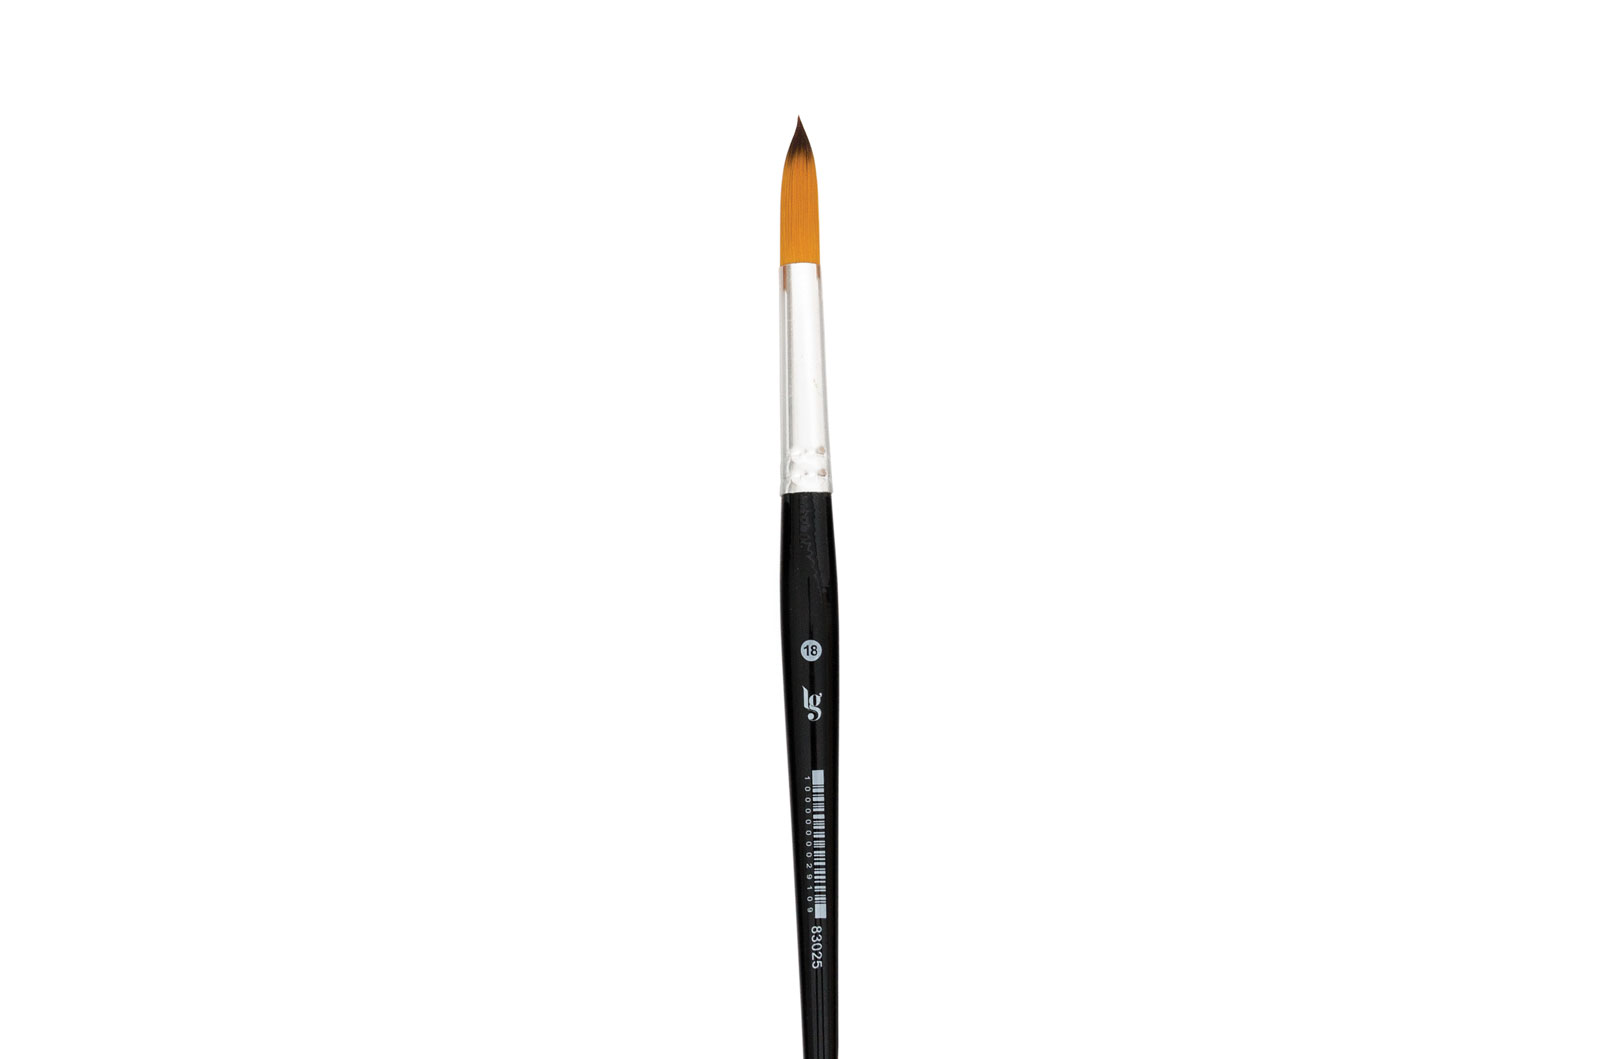 BRUSH LG Nº18 SYNTHETIC ROUND /12